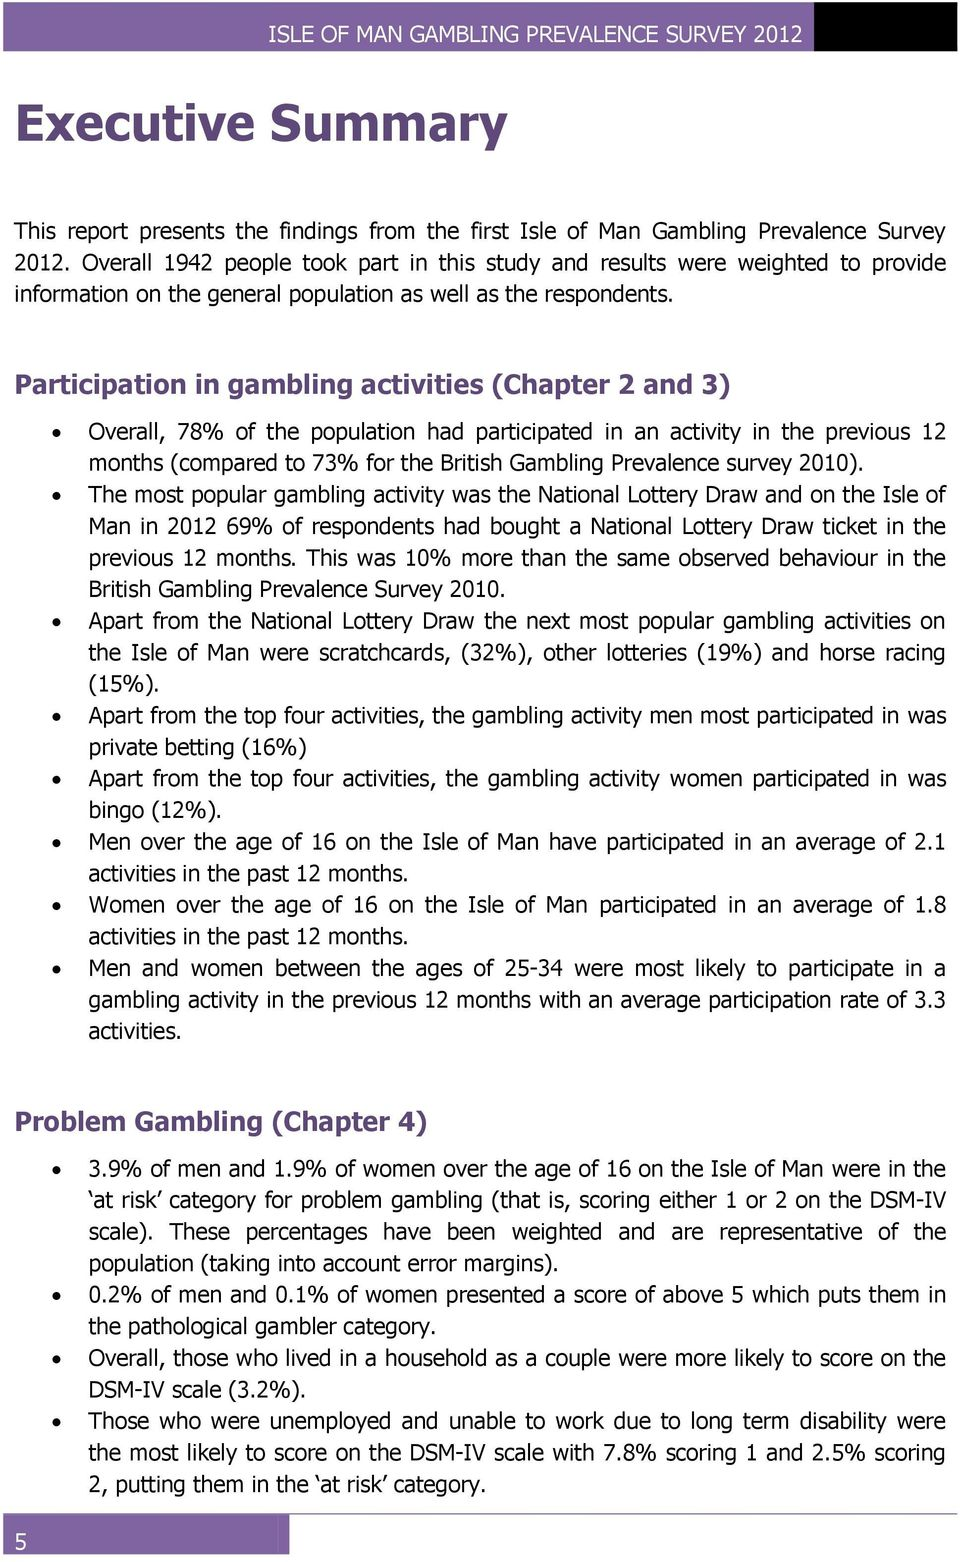 Participation in gambling activities (Chapter 2 and 3) Overall, 78% of the population had participated in an activity in the previous 12 months (compared to 73% for the British Gambling Prevalence